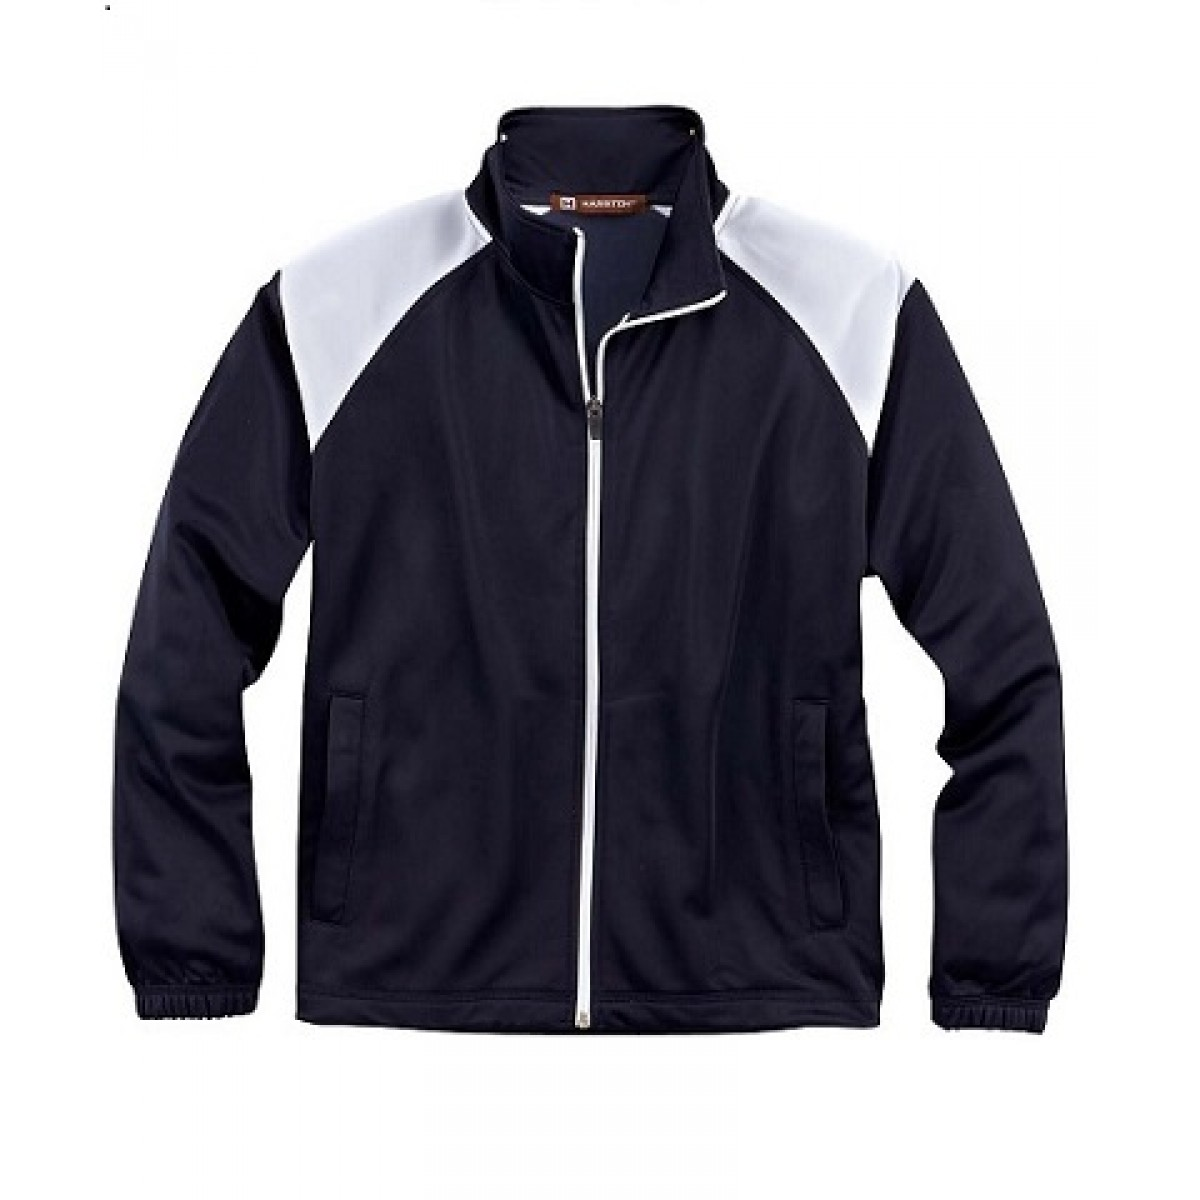 Embroidered Navy Tricot Track Jacket-Navy-L